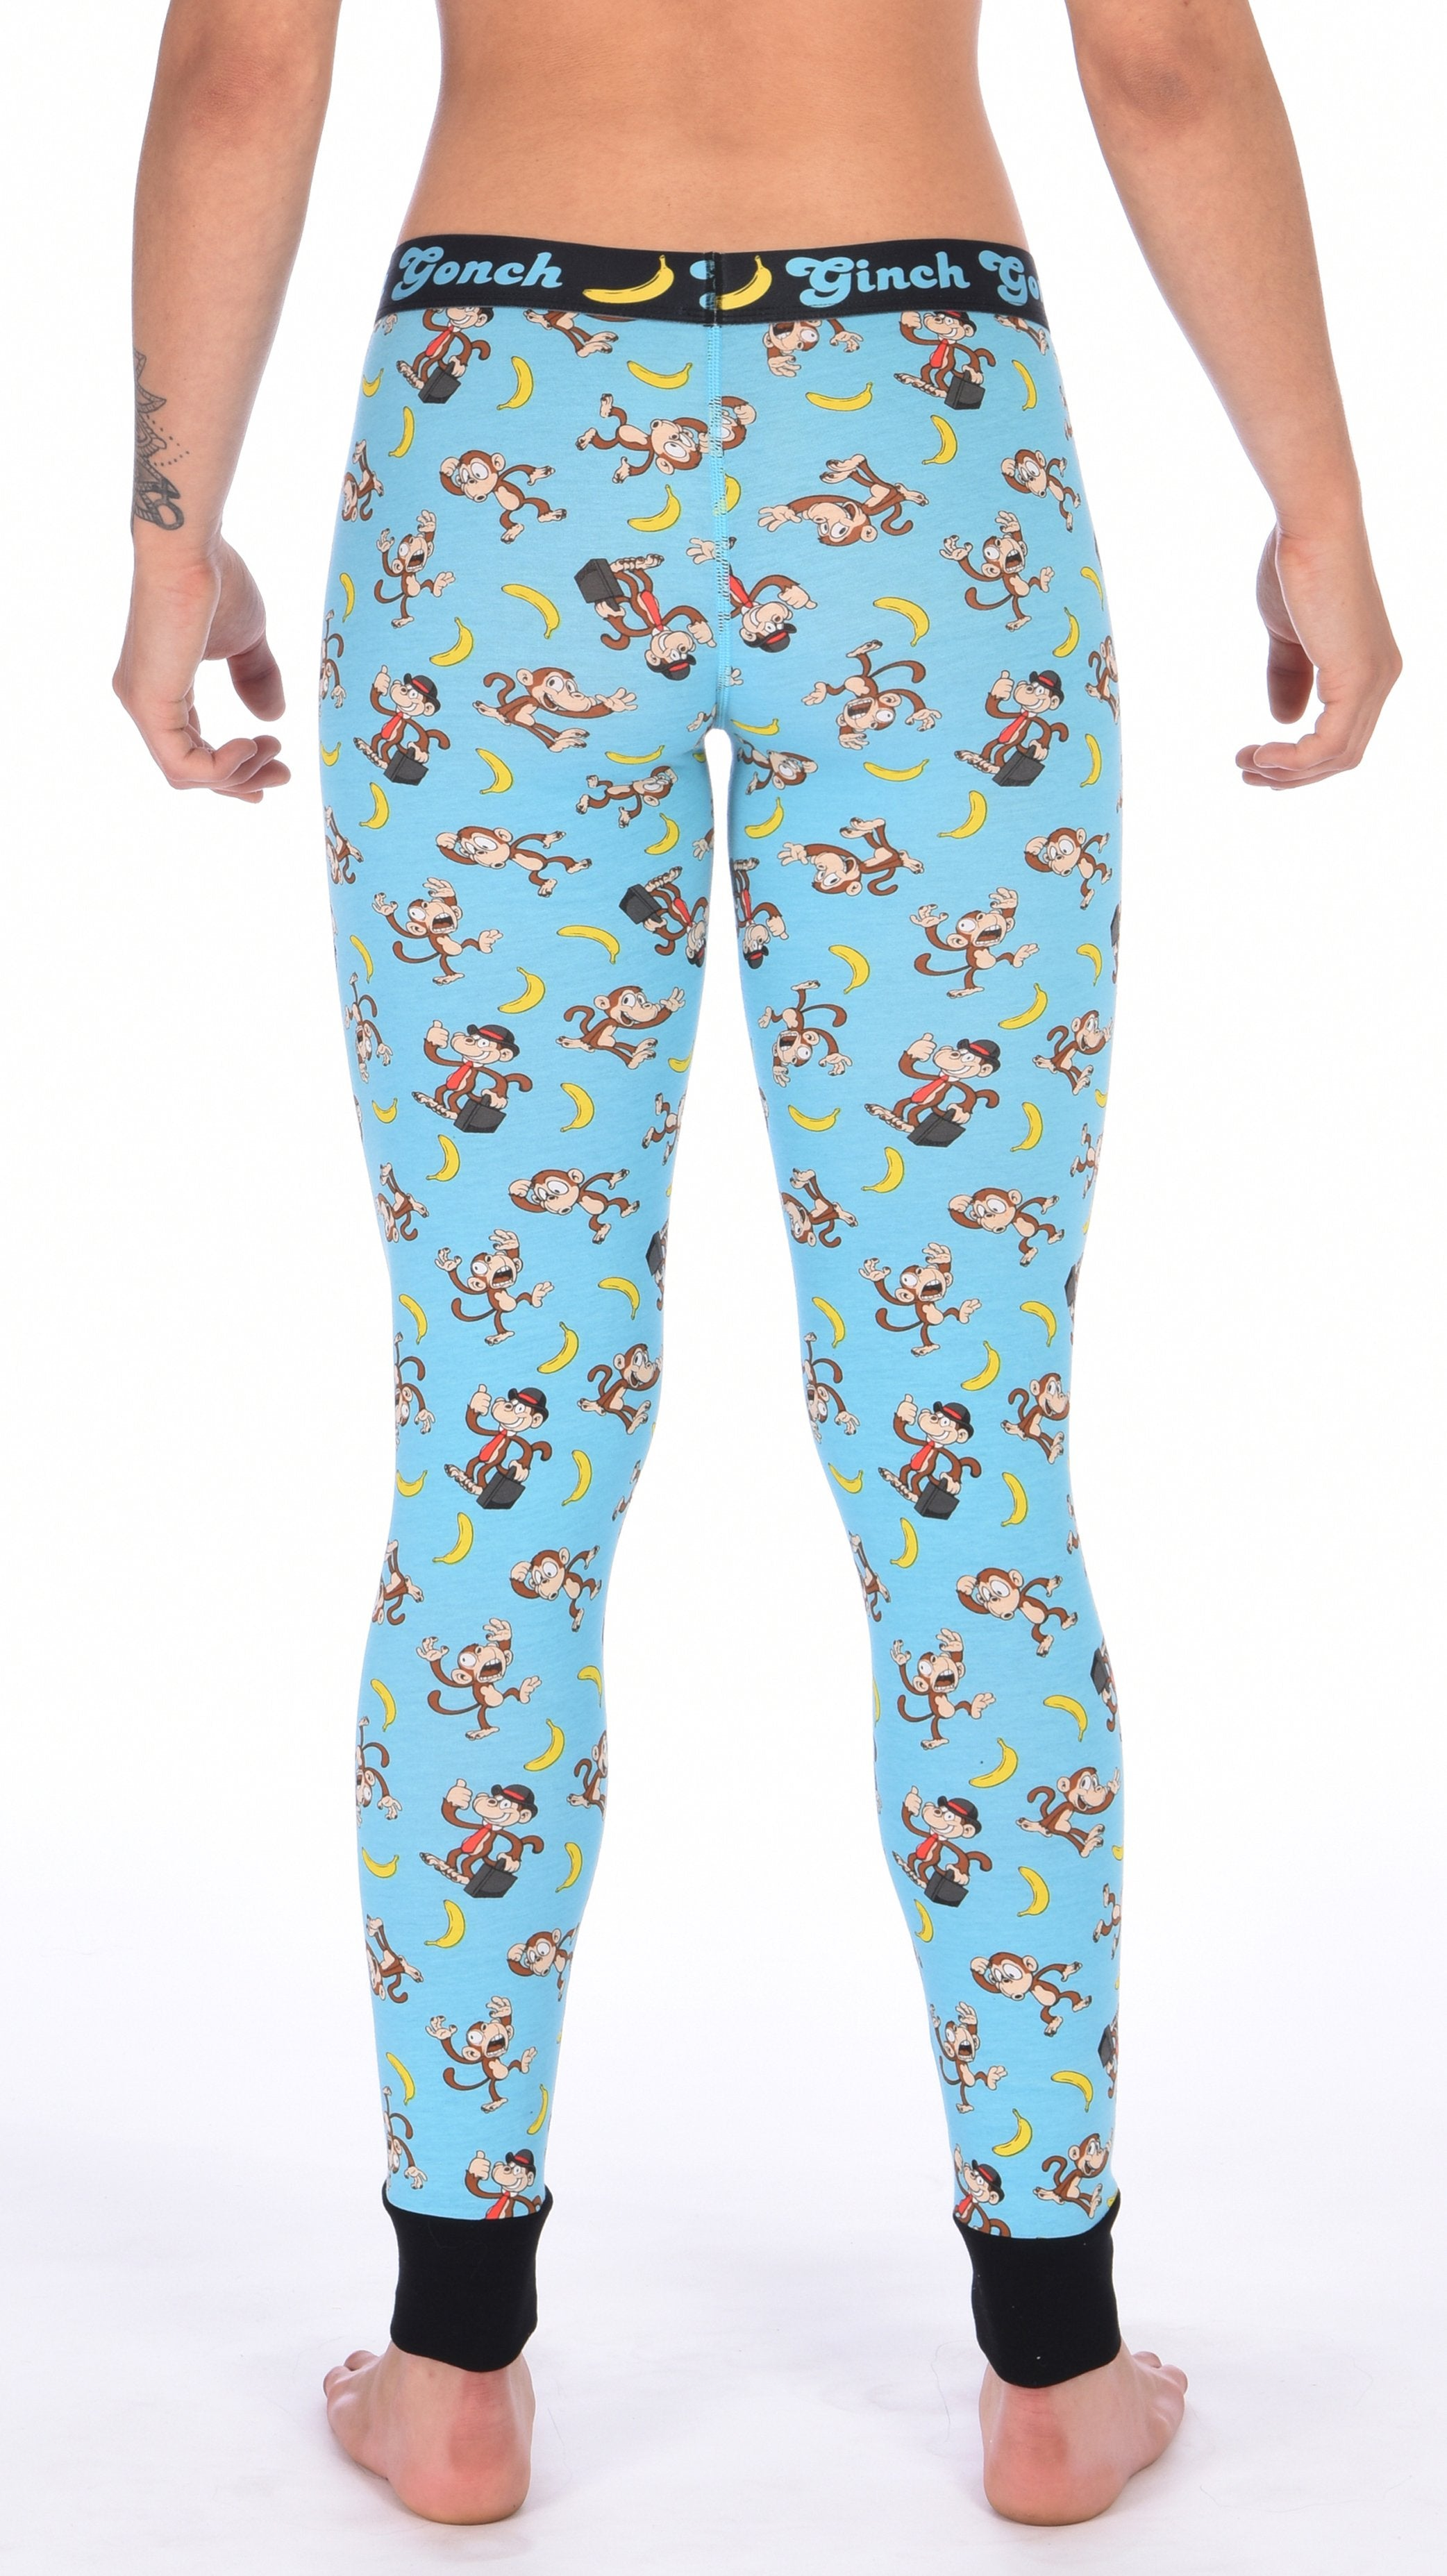 Monkey Business Women's Leggings